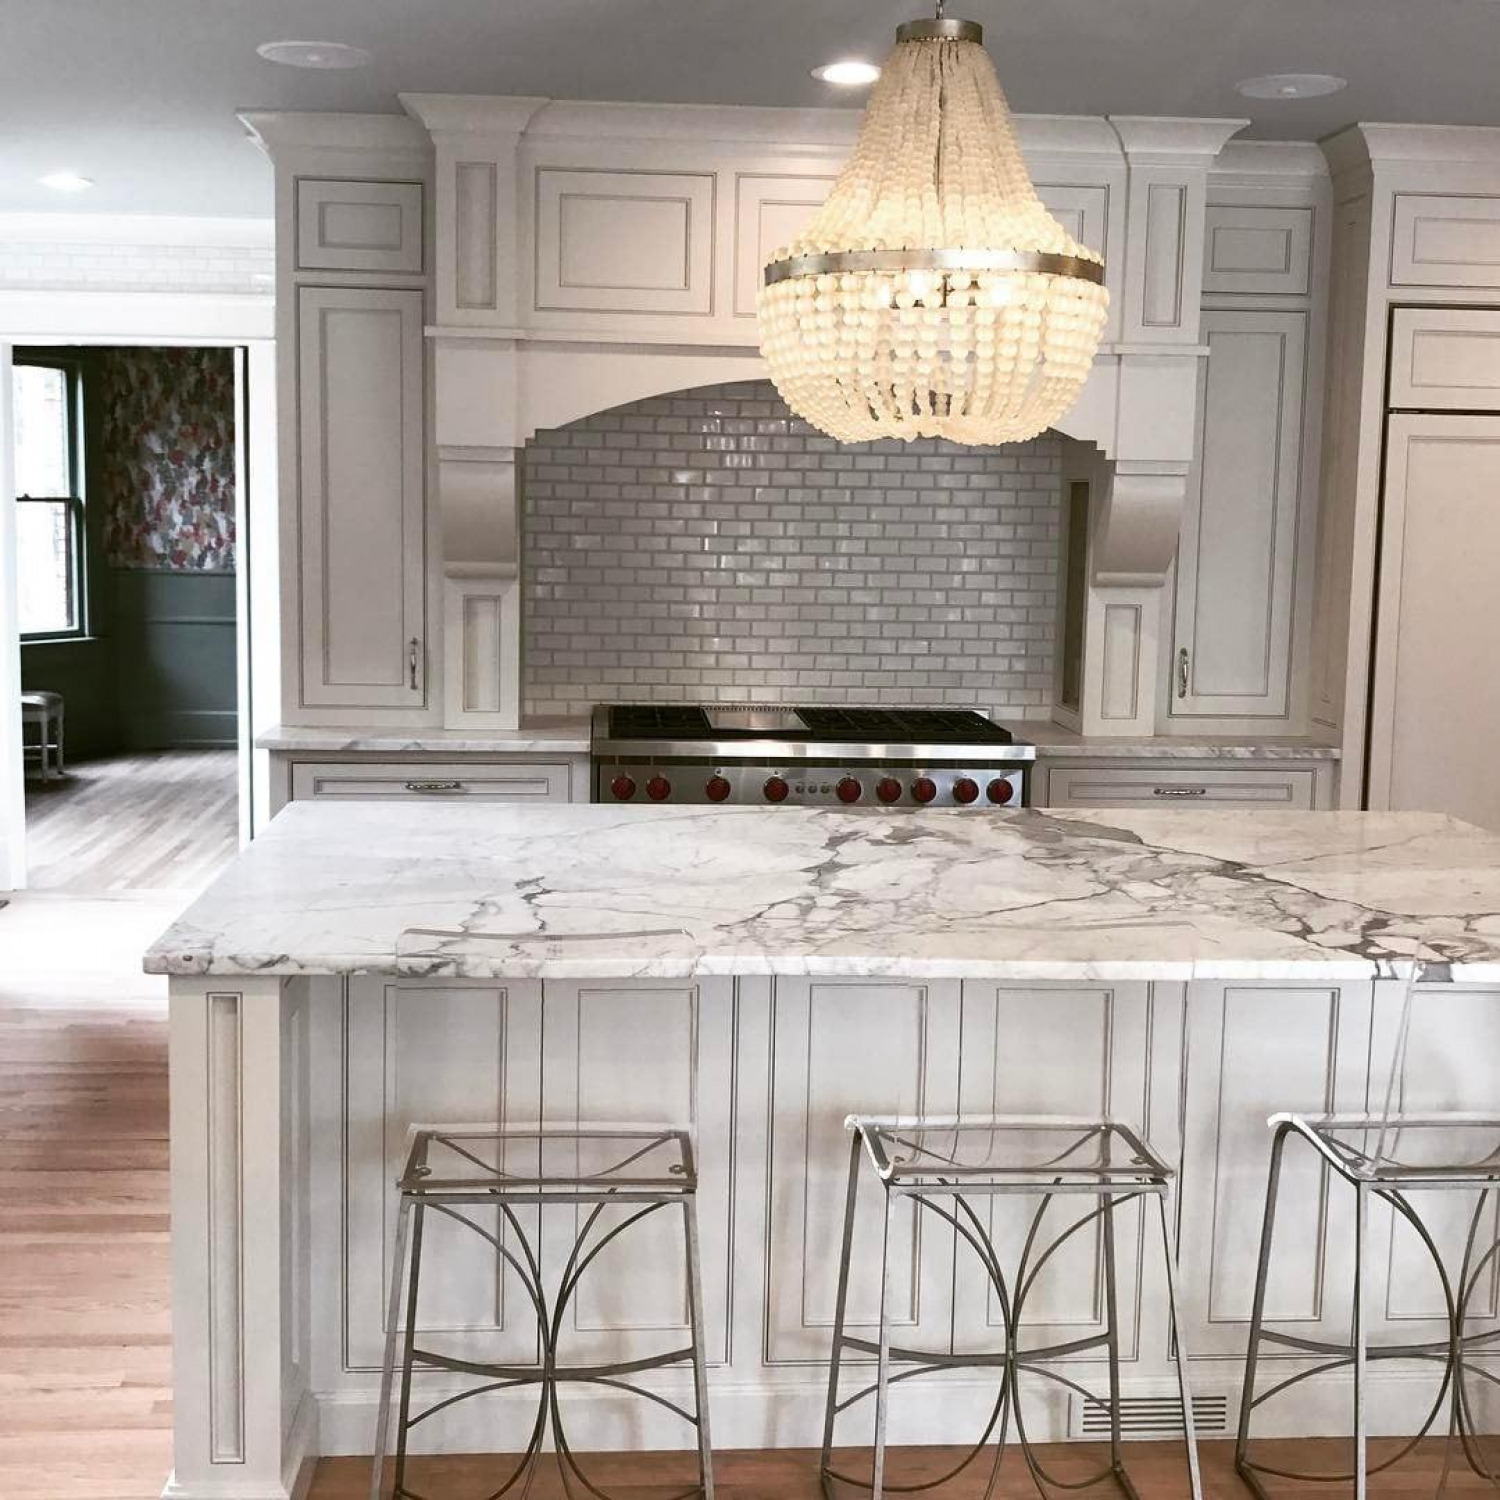 25 Lighting Ideas For The Kitchen: Lighting Ideas For Every Area Of Your Kitchen